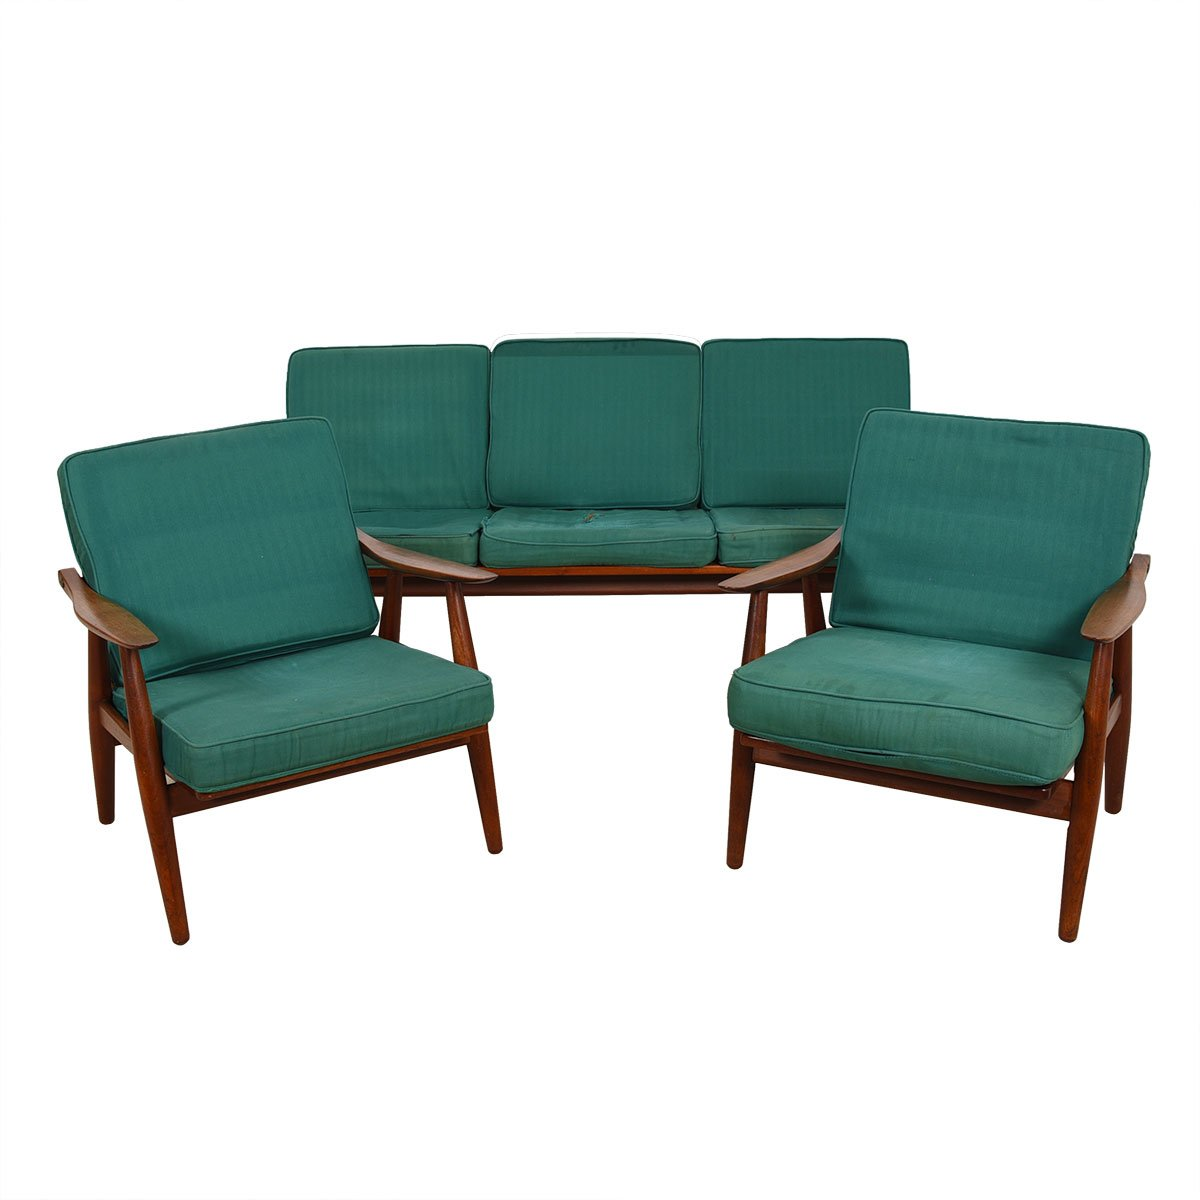 Hans Wegner Ge-270 Danish Teak Sofa & Pr Chairs Set